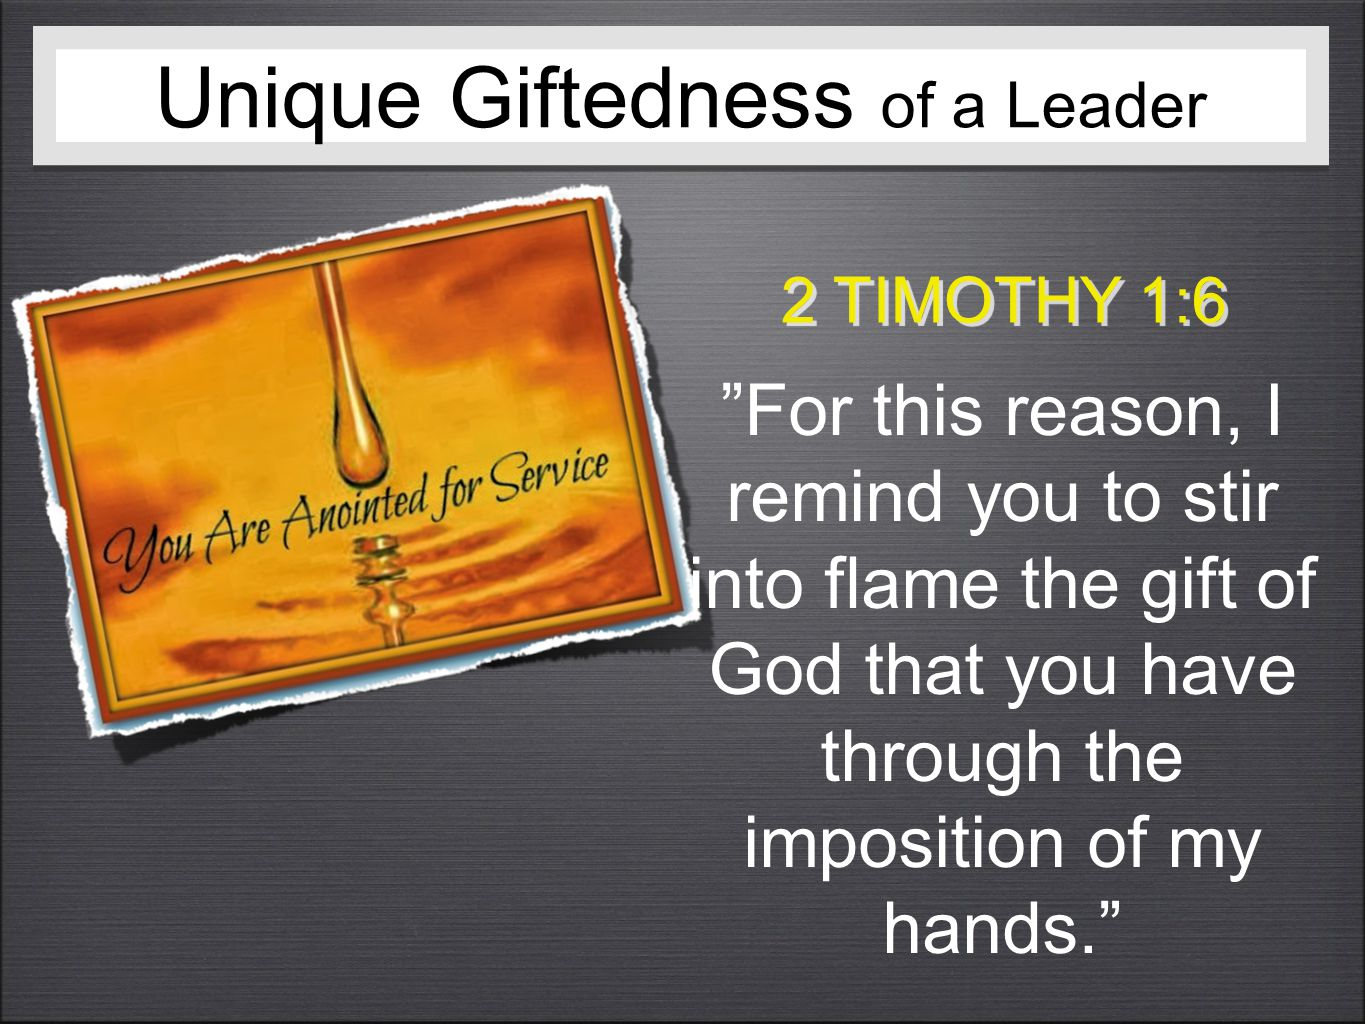 Unique Giftedness of a Leader 2 TIMOTHY 1:6 For this reason, I remind you to stir into flame the gift of God that you have through the imposition of my hands.